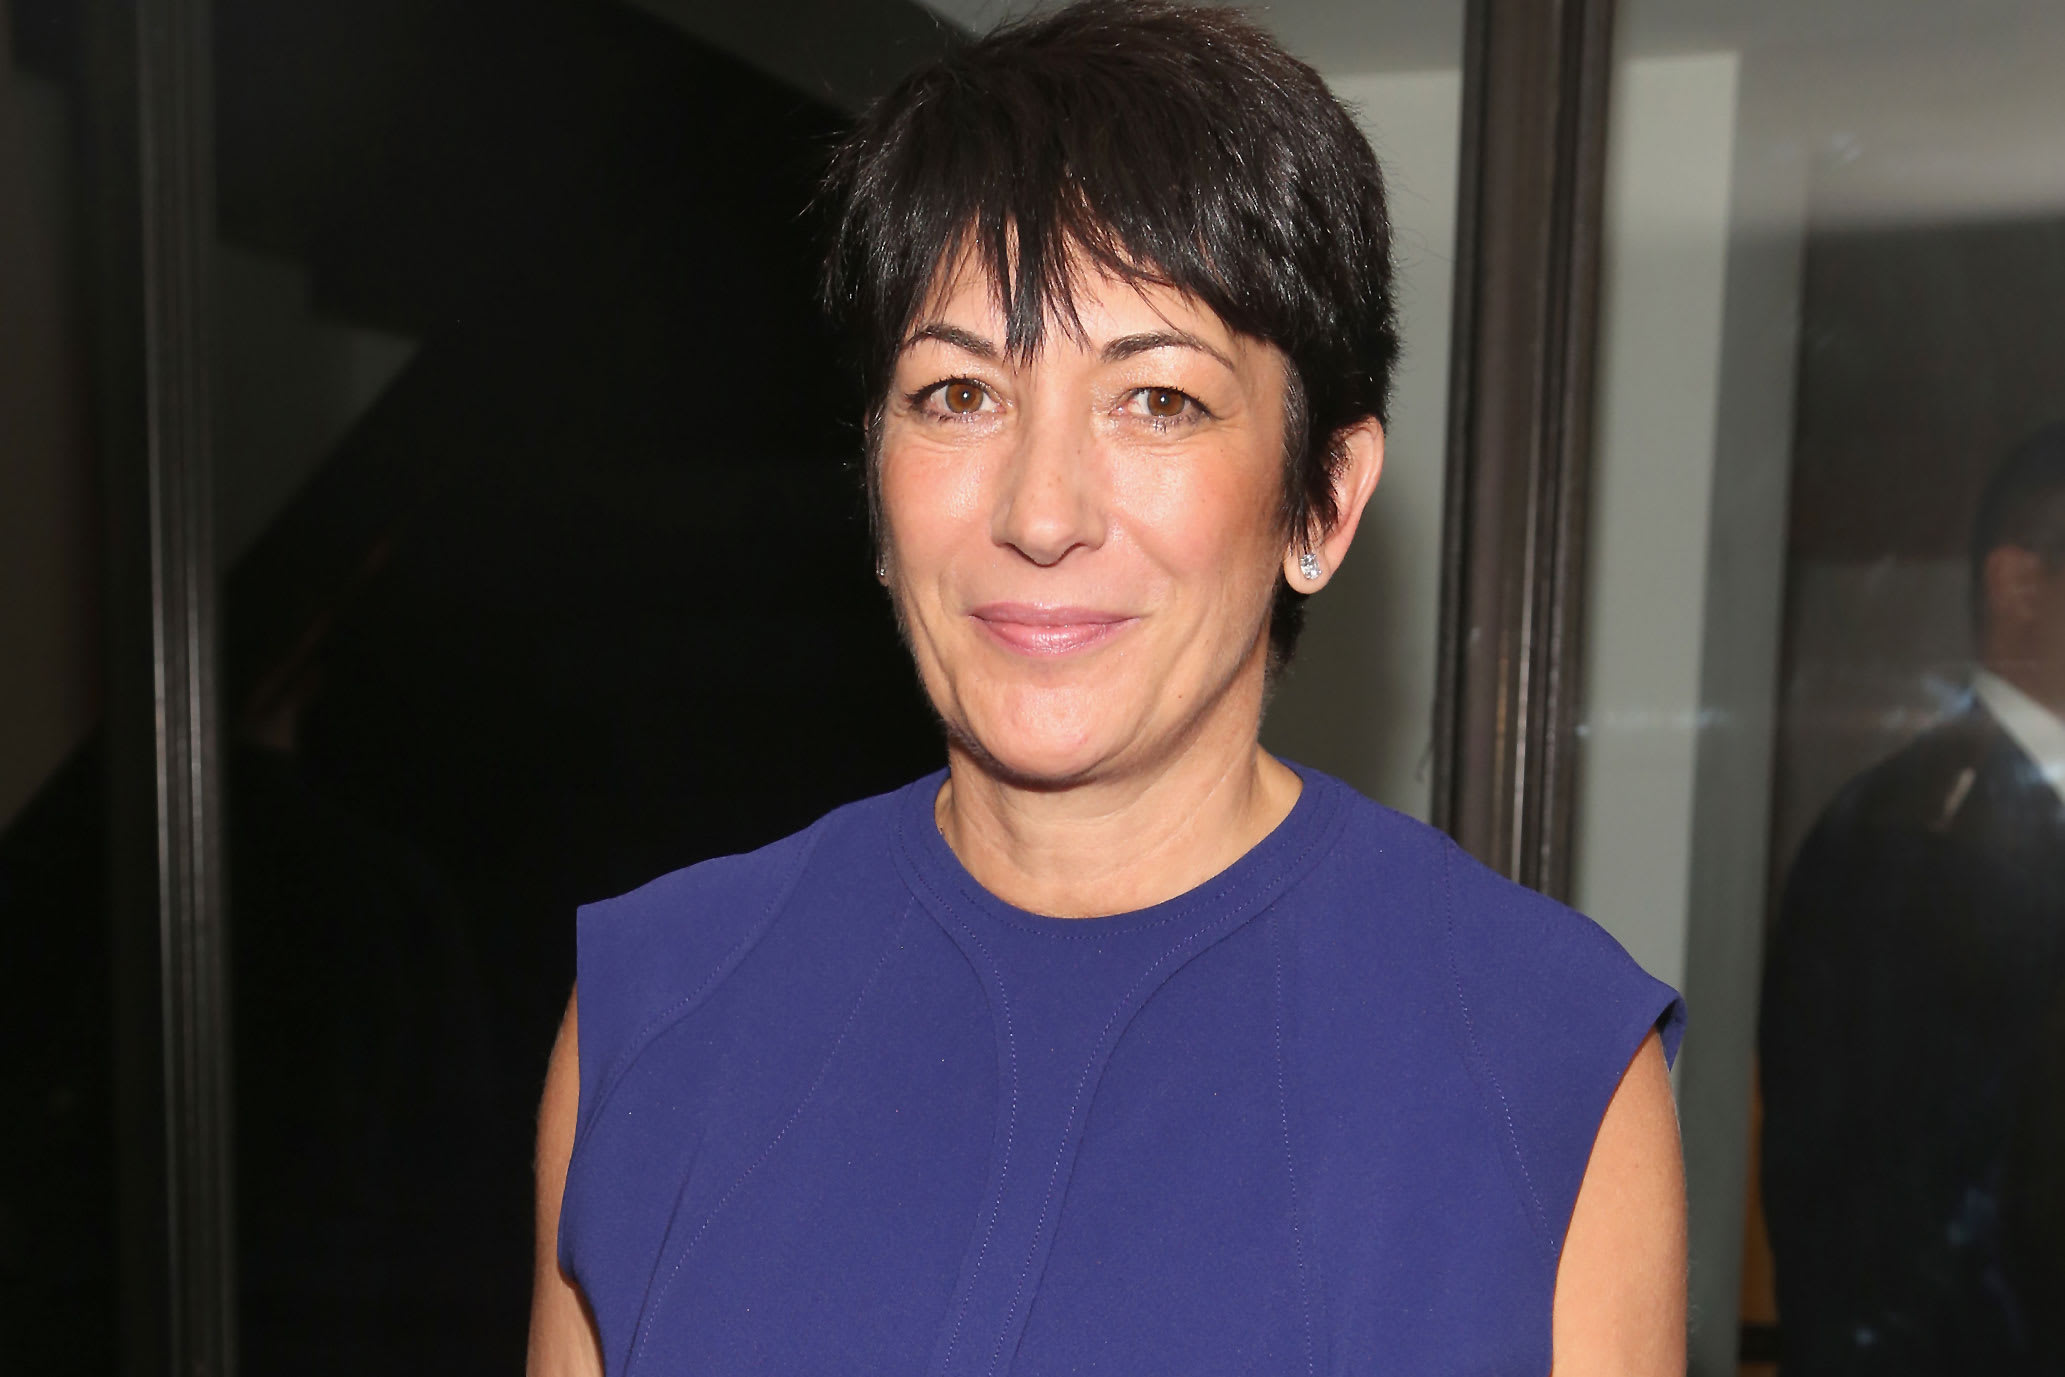 odds on how Ghislaine Maxwell will die